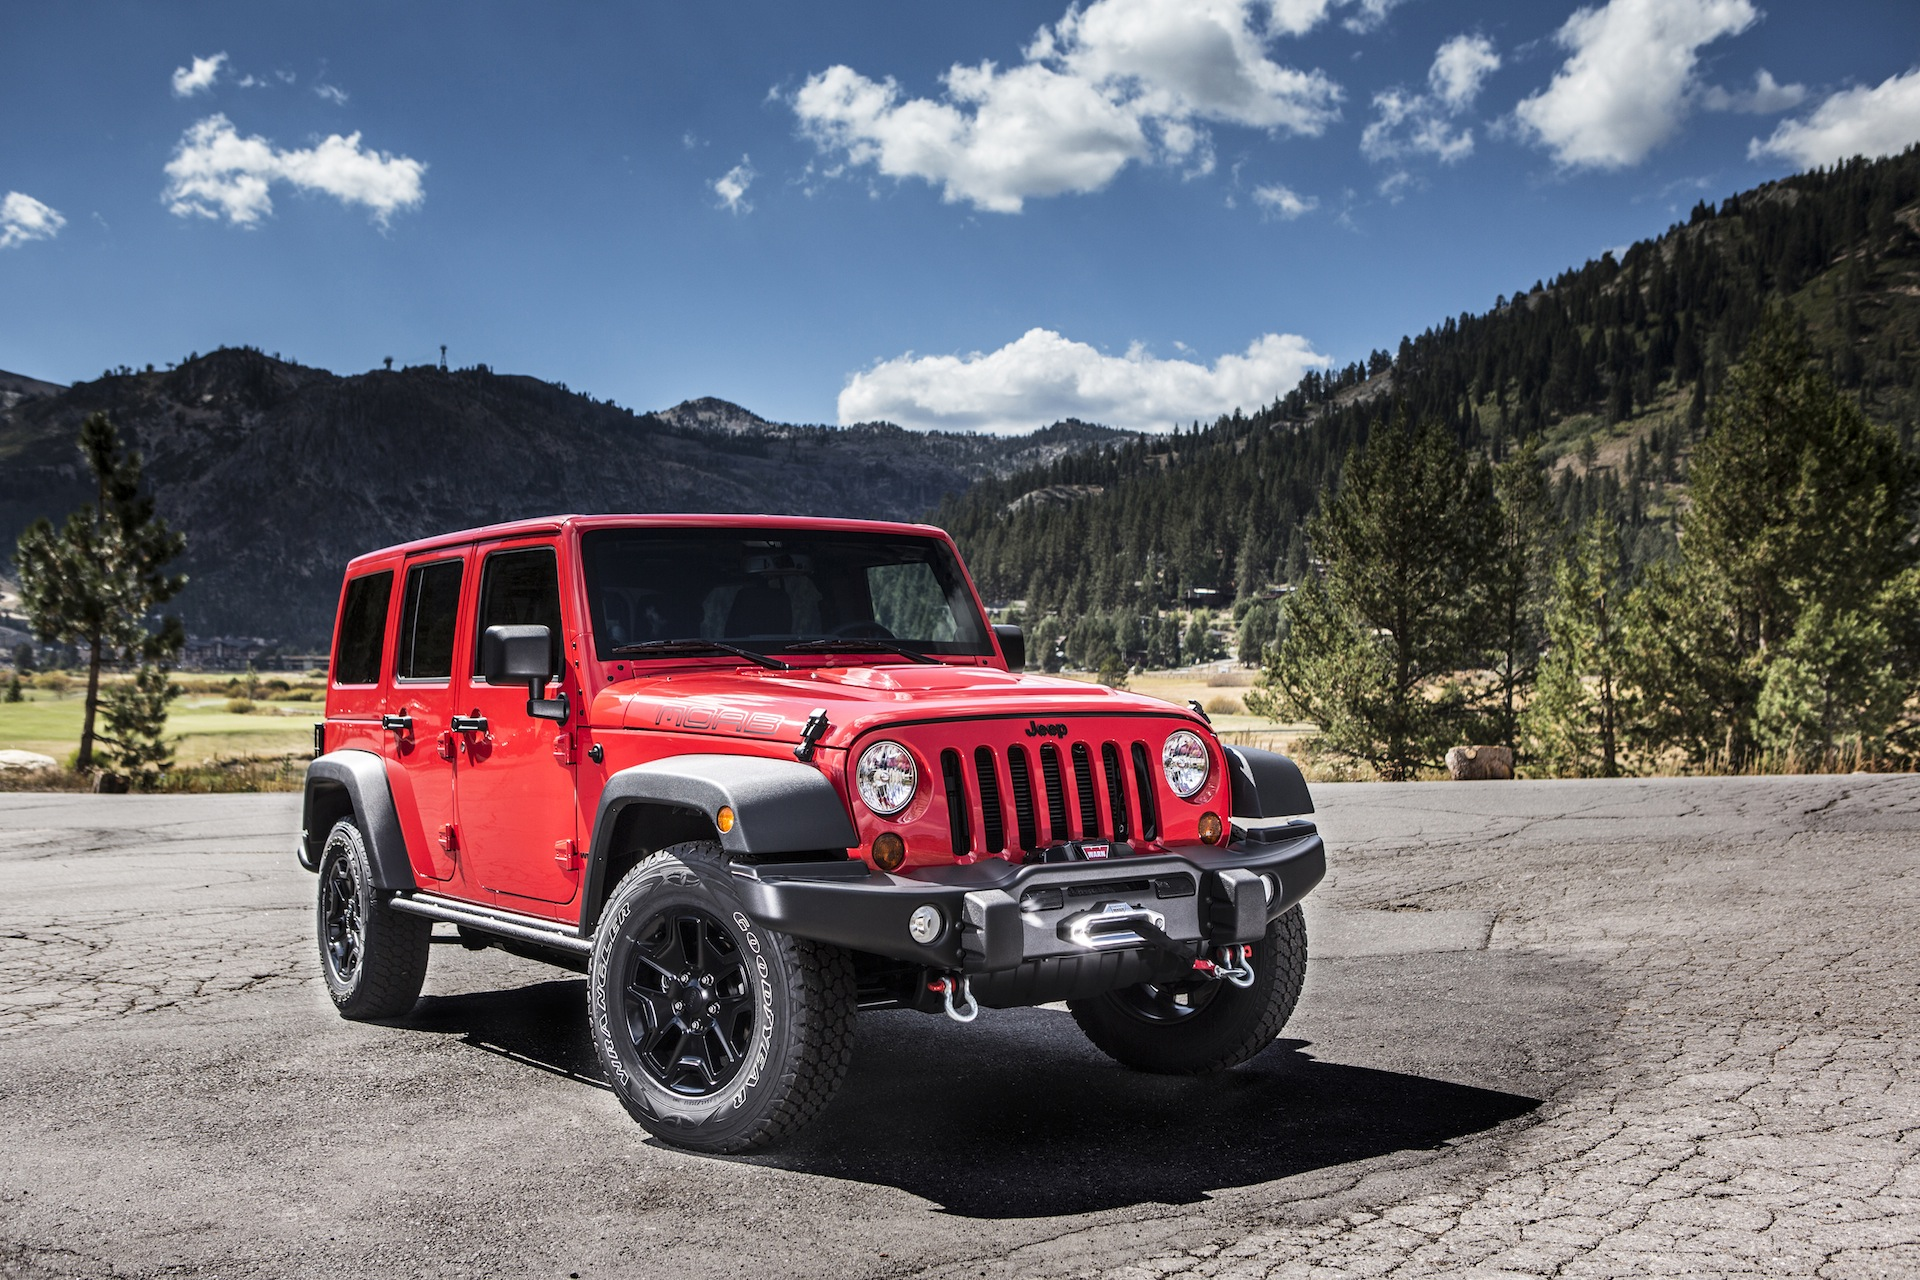 Next Jeep Wrangler To Get Eight-Speed Auto: Report